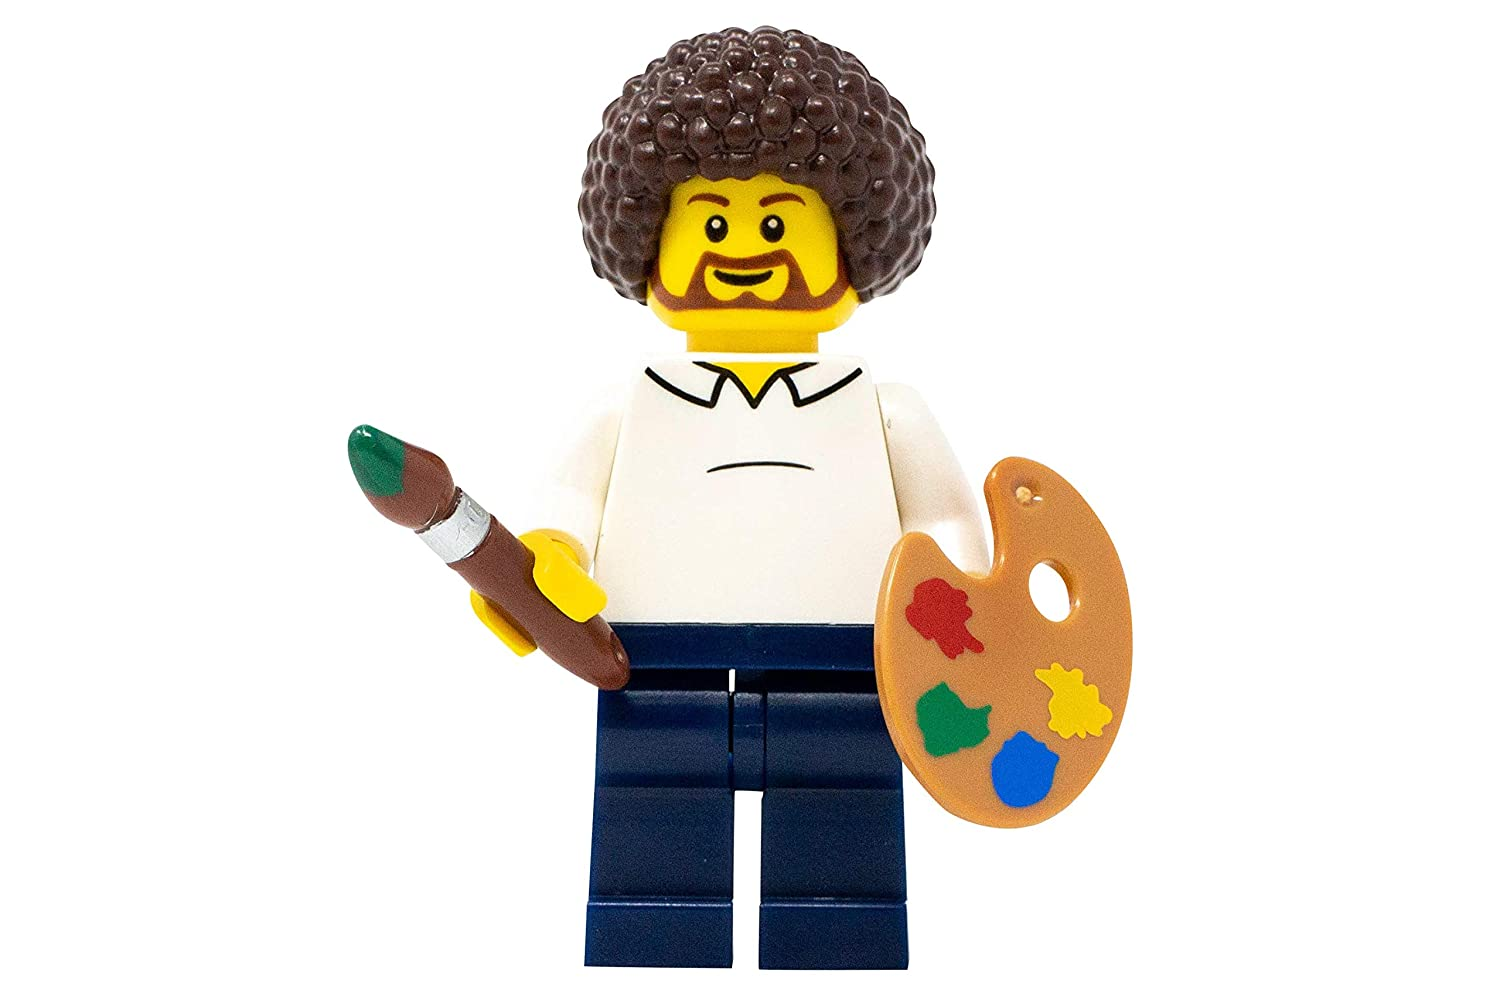 4 X 1 PAINT BRUSH FOR THE ARTIST FROM SERIES 4 PARTS LEGO-MINIFIGURES SERIE